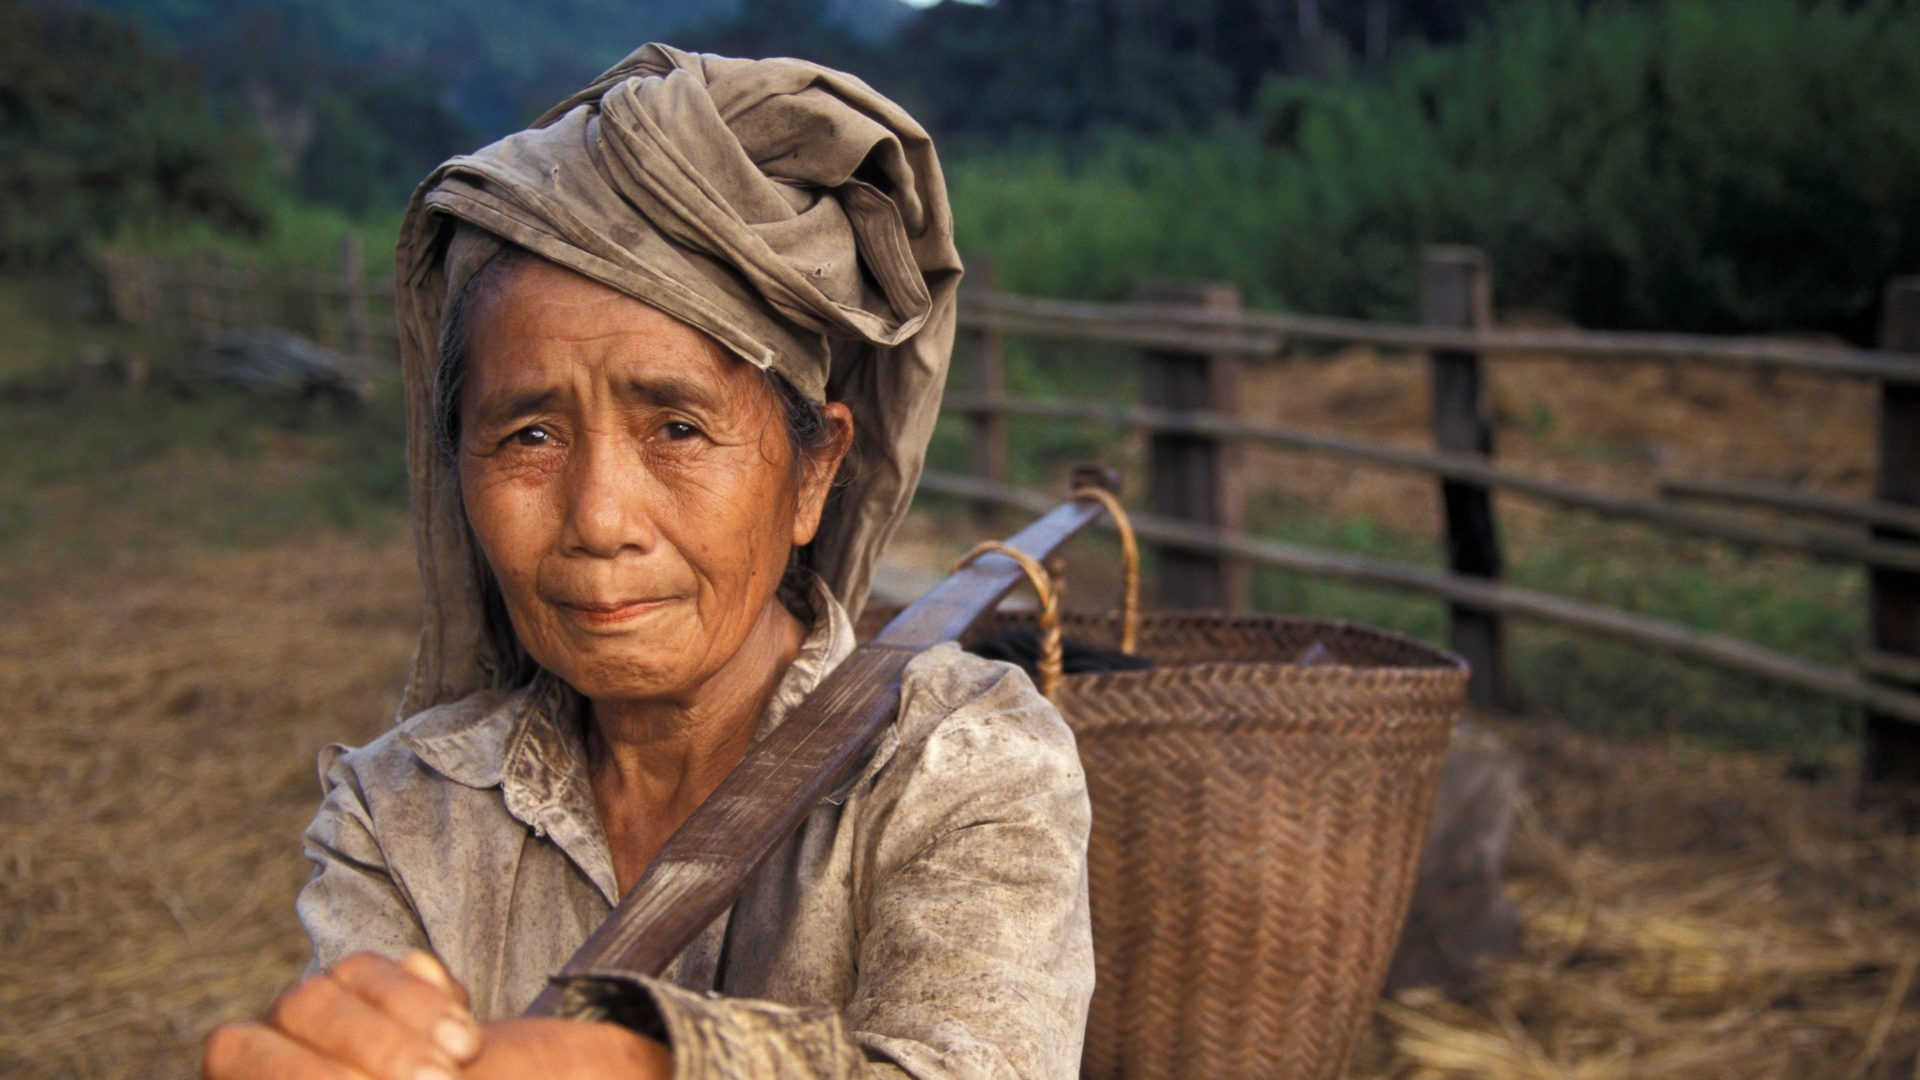 Hmong village woman, Laos with GeoEx